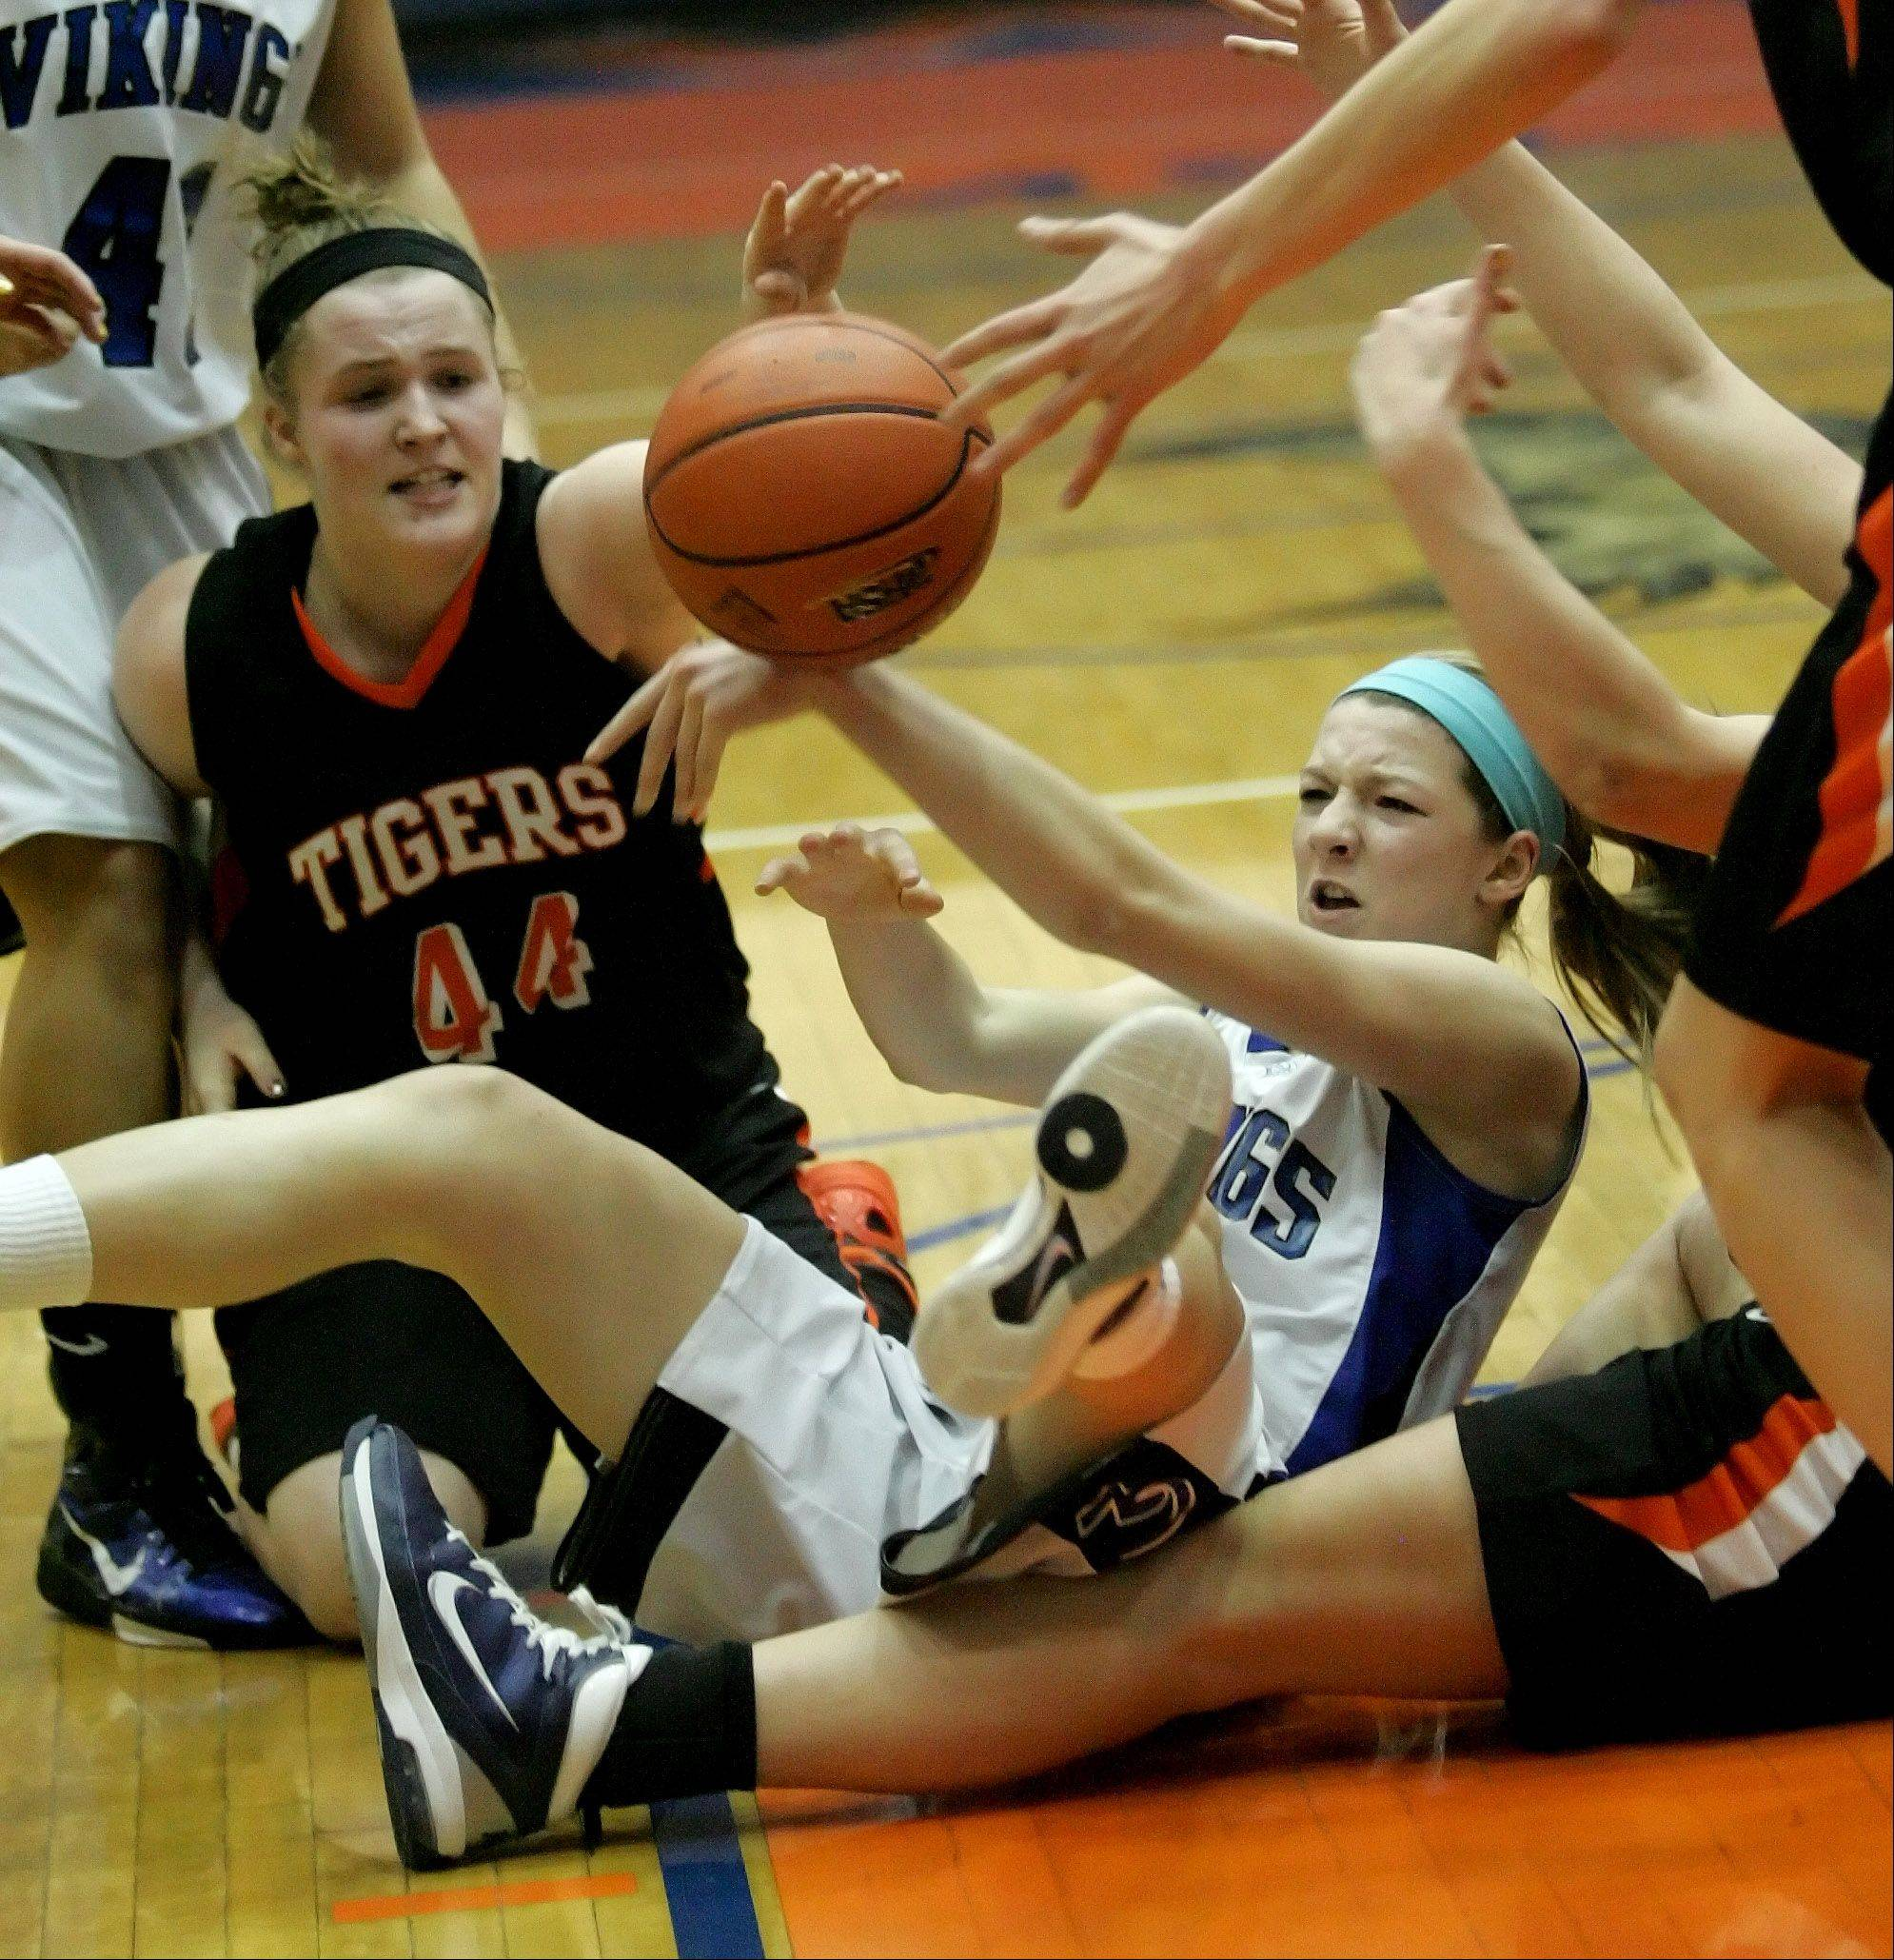 Olivia Linebarger of Wheaton Warrenville South, left , and Michaela Loebel of Geneva tumble chasing a ball.